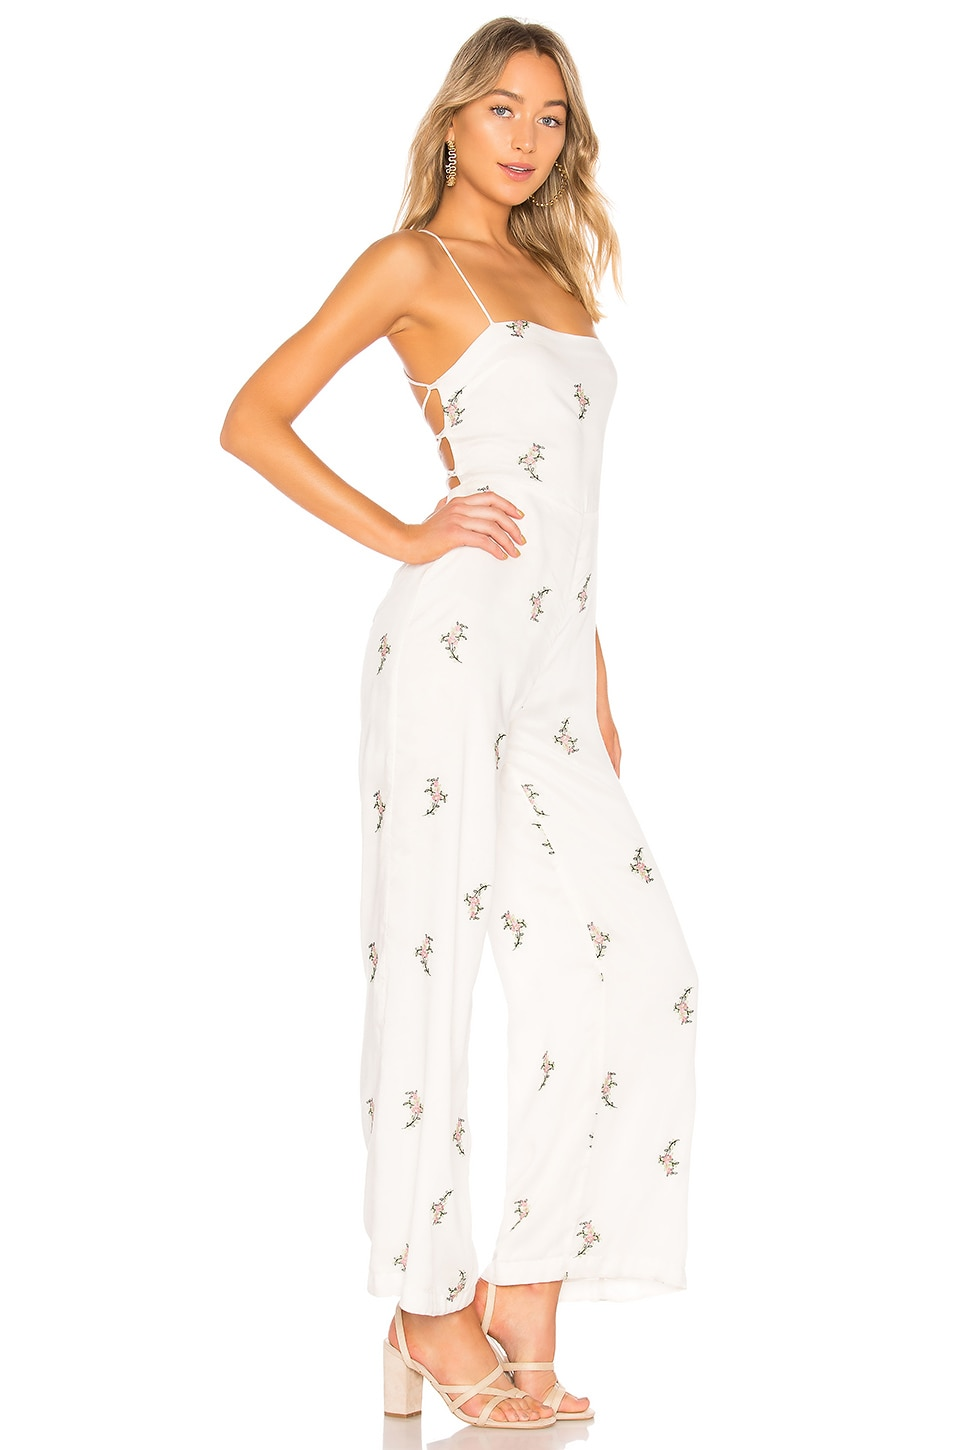 House of Harlow 1960 x REVOLVE Natalie Jumpsuit in White